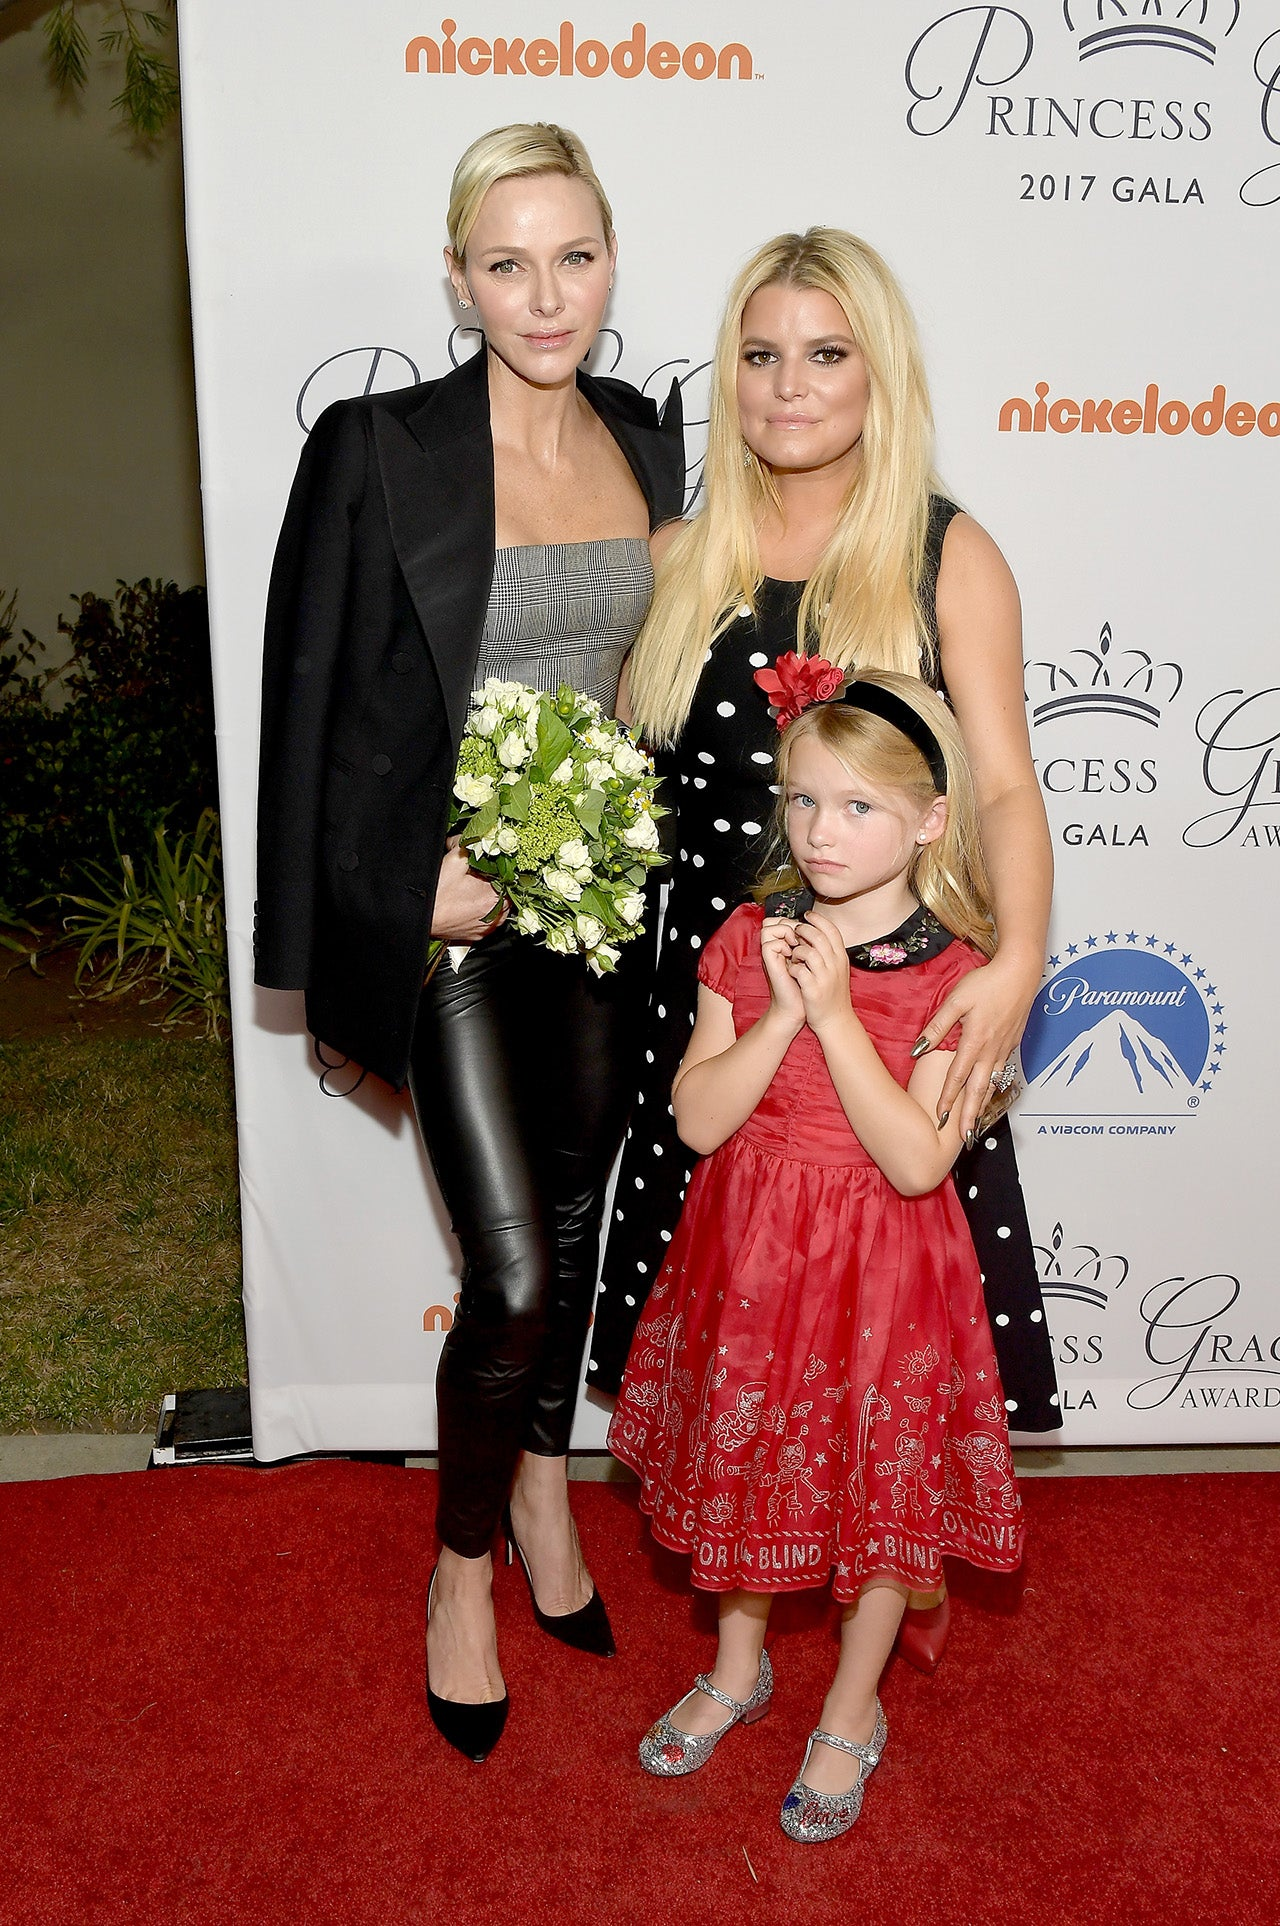 Jessica Simpson and Maxwell meet Princess Charlene